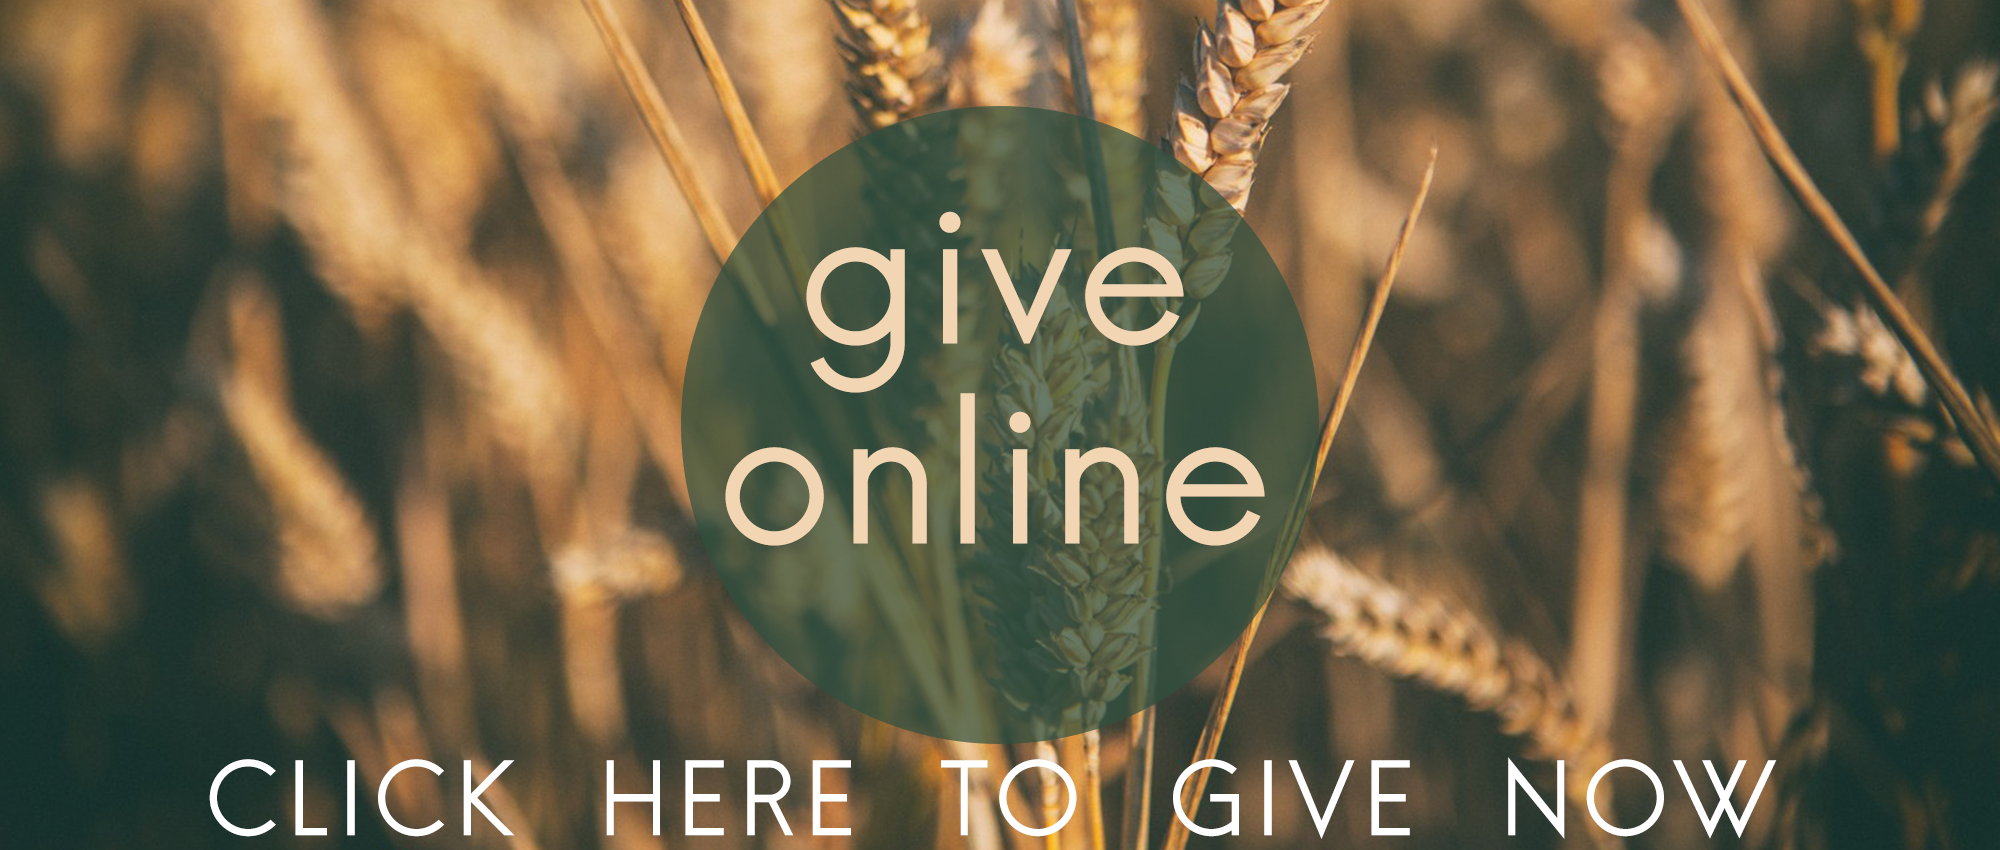 Online-giving-Web-banner